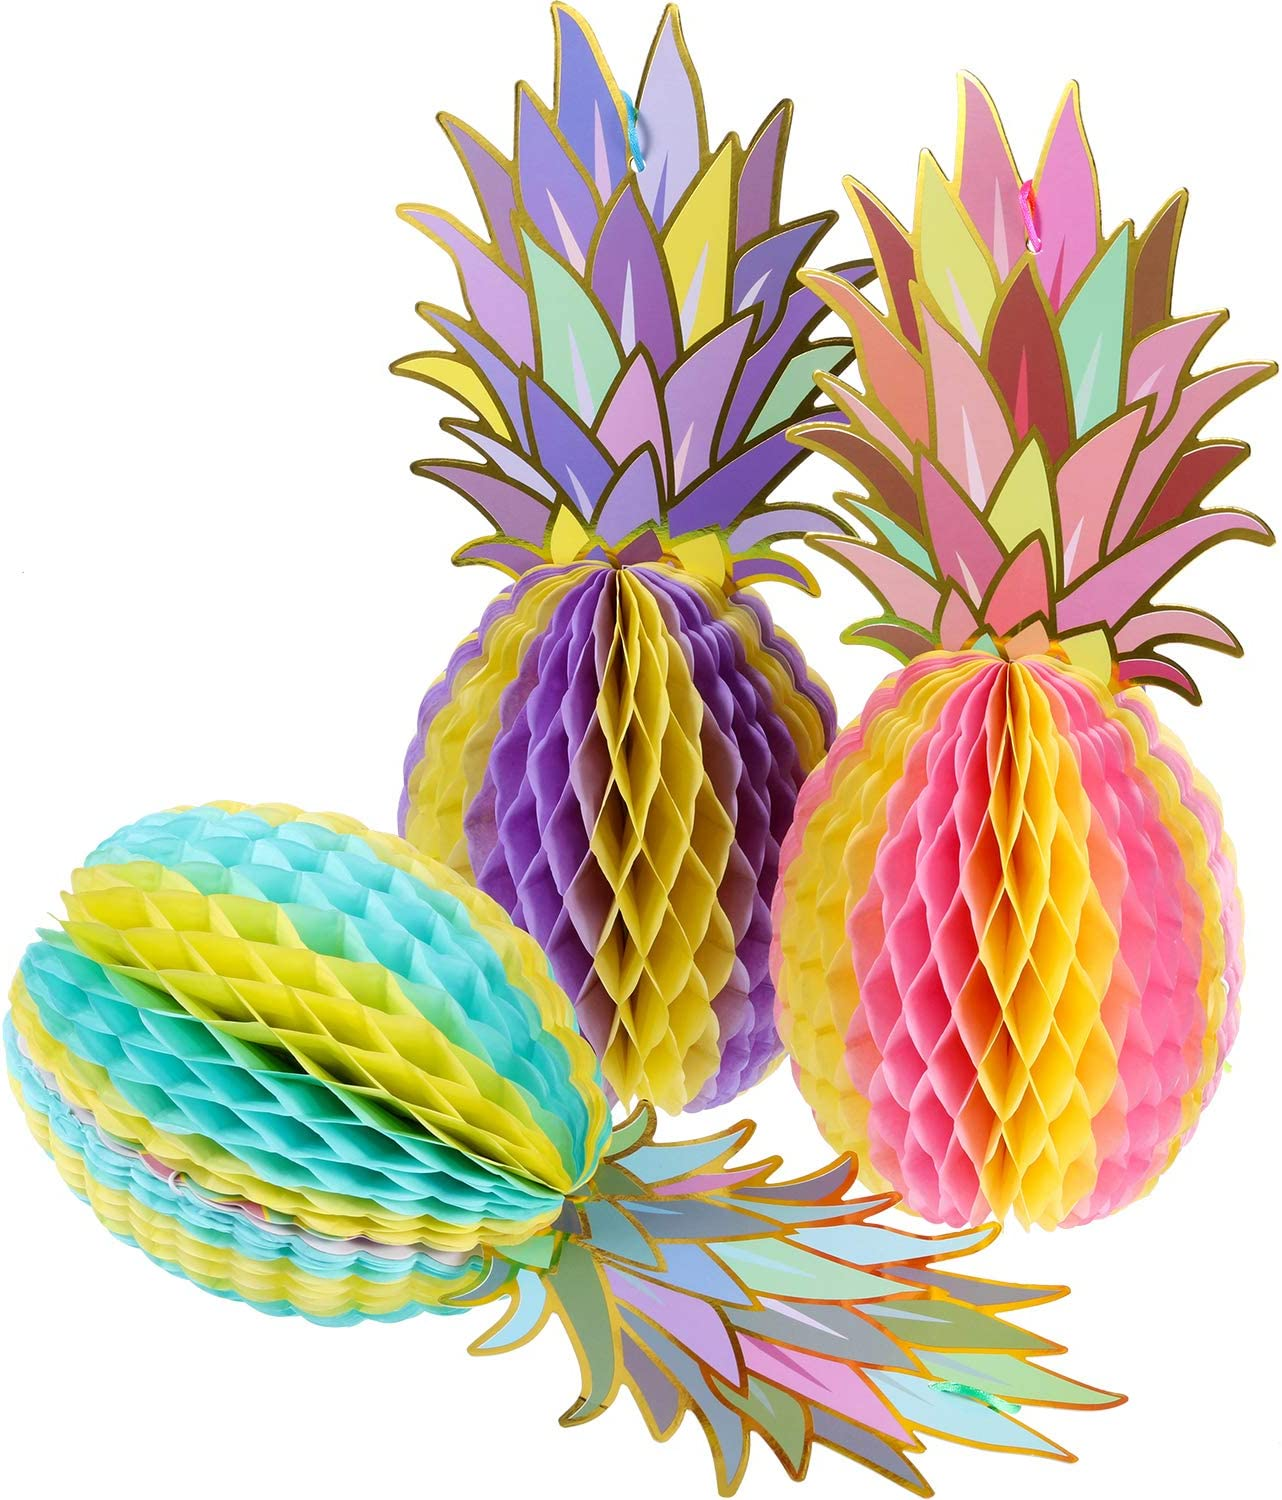 Hestya 6 Pieces Colorful Tissue Pineapple Honeycomb 12 Inch Paper Hawaii Fruit for Tropical Hawaiian Summer Theme Party Beach Decor Wedding Birthday Favor